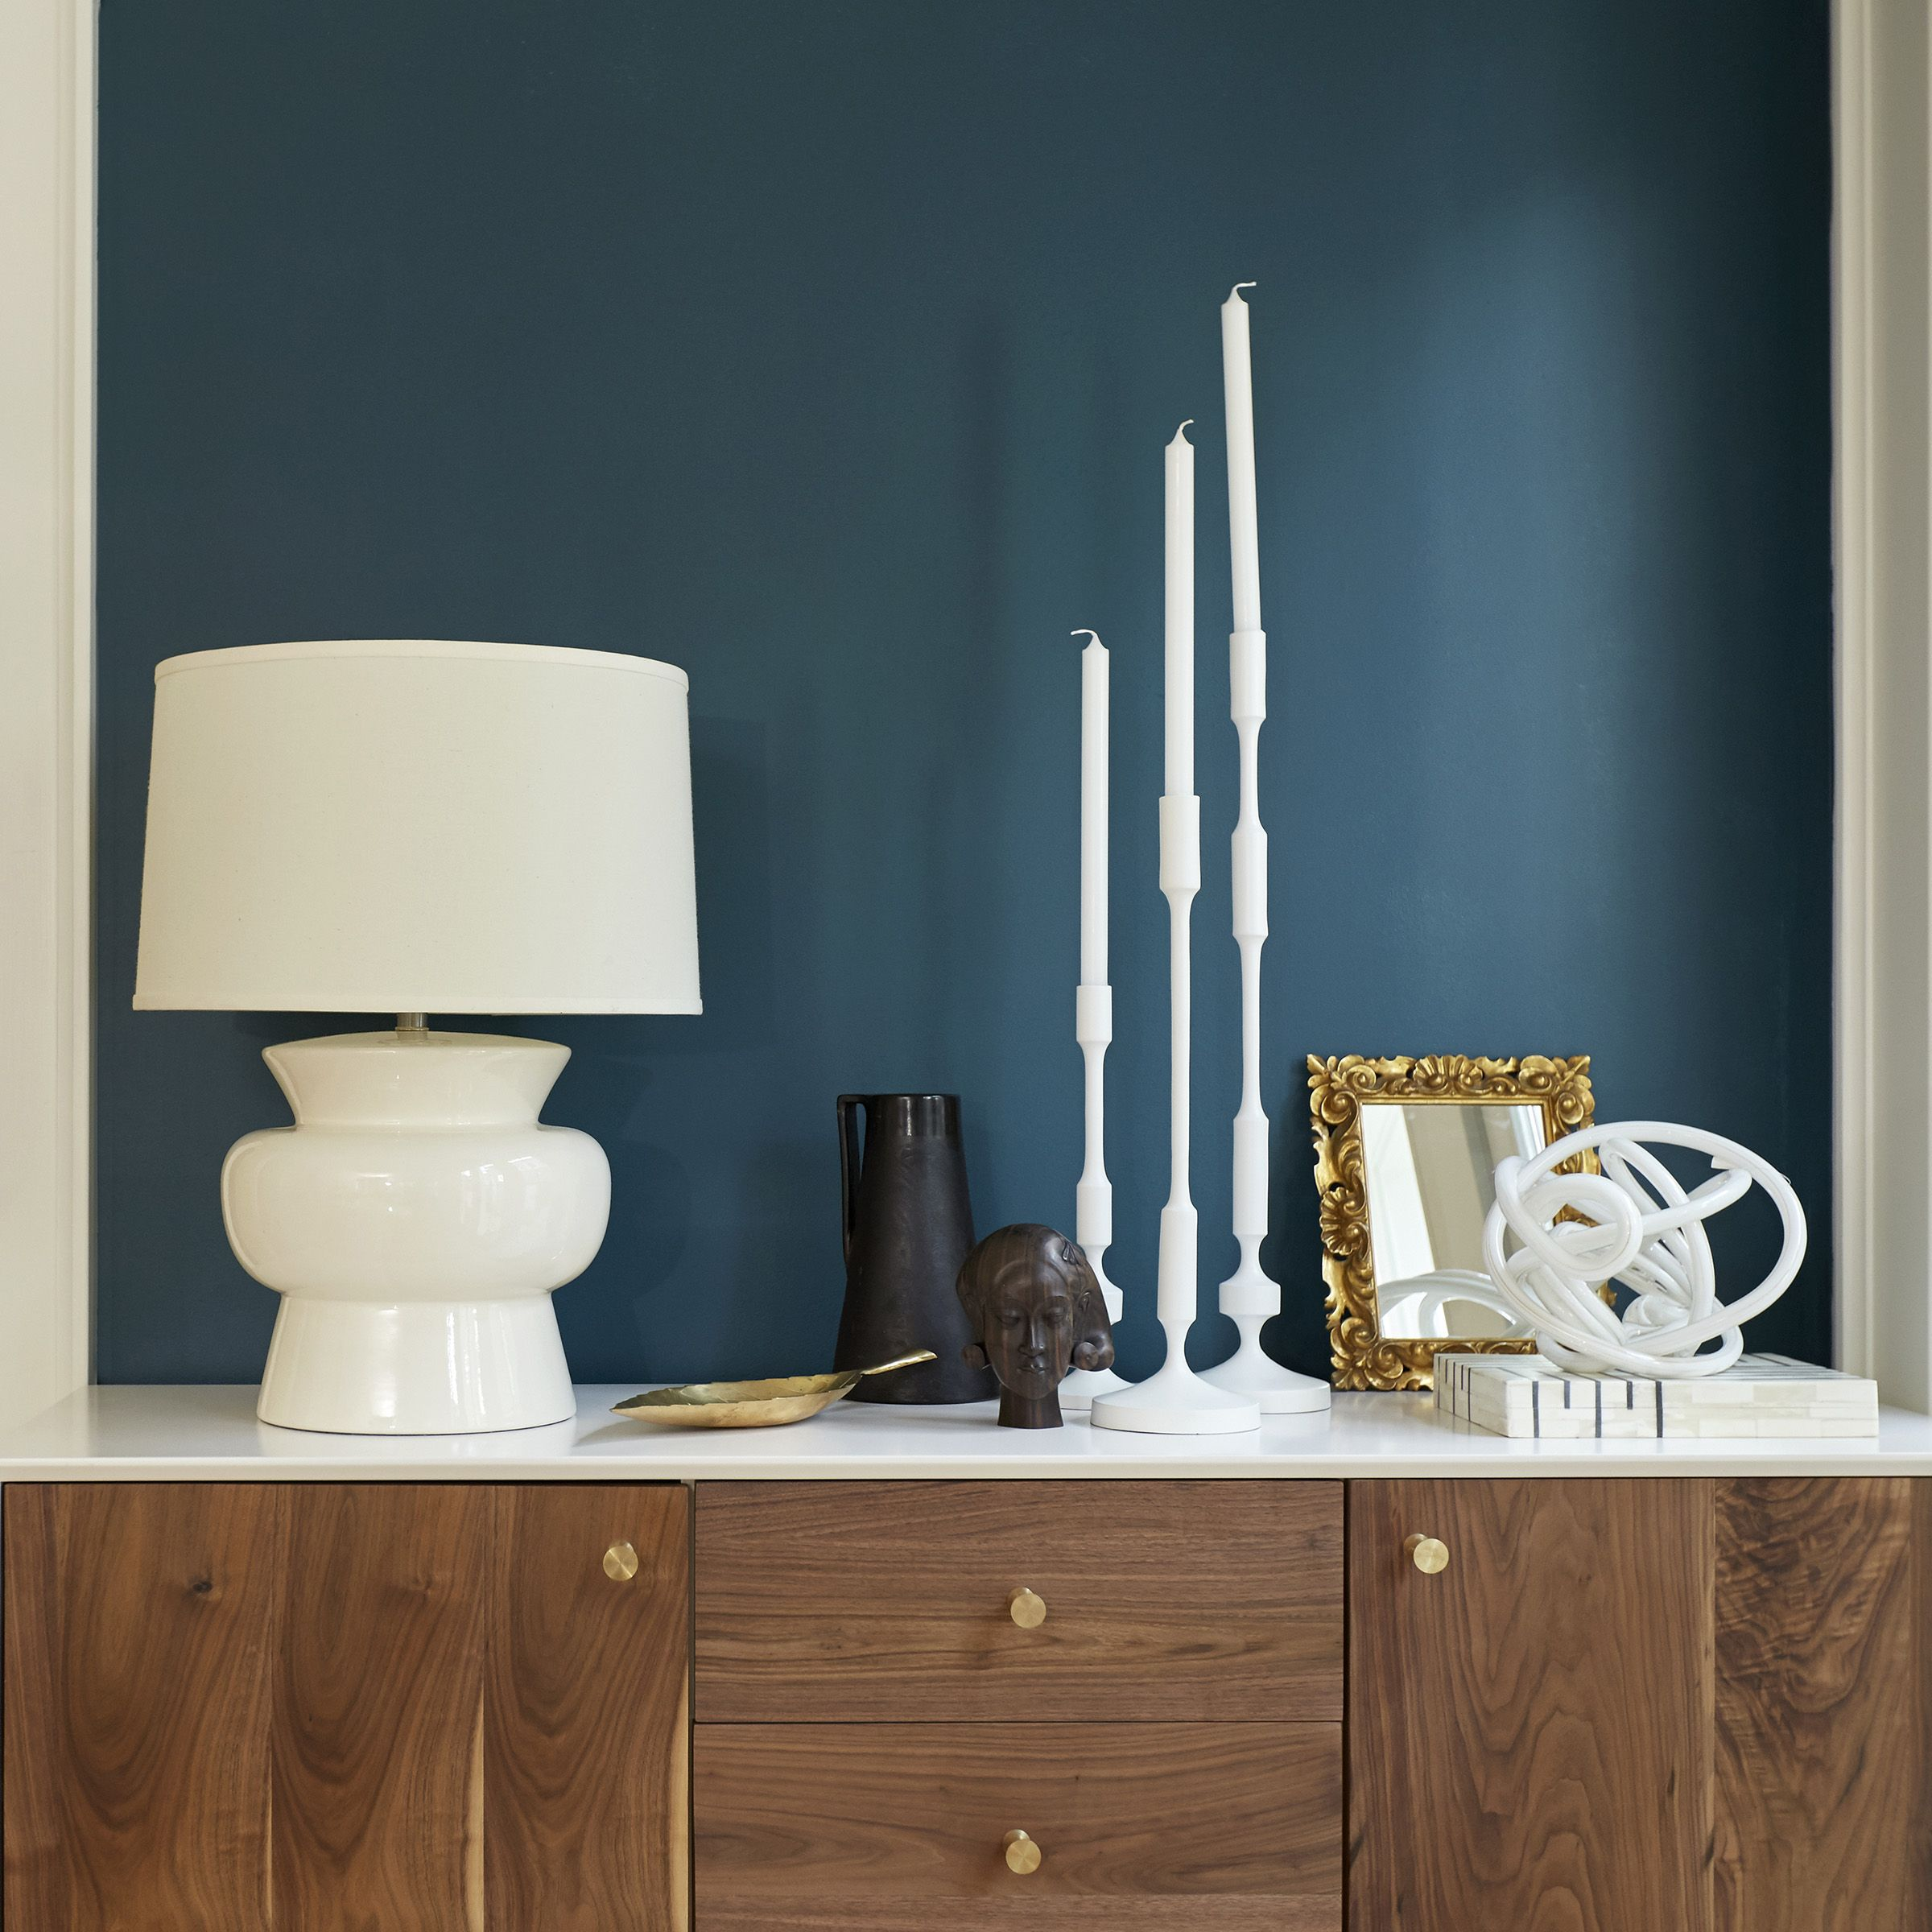 Beau Refresh Your Home With Kelly Moore Paints! This Sea Of Atlantis Interior  Paint Brings A Pop Of Color To Any Room.